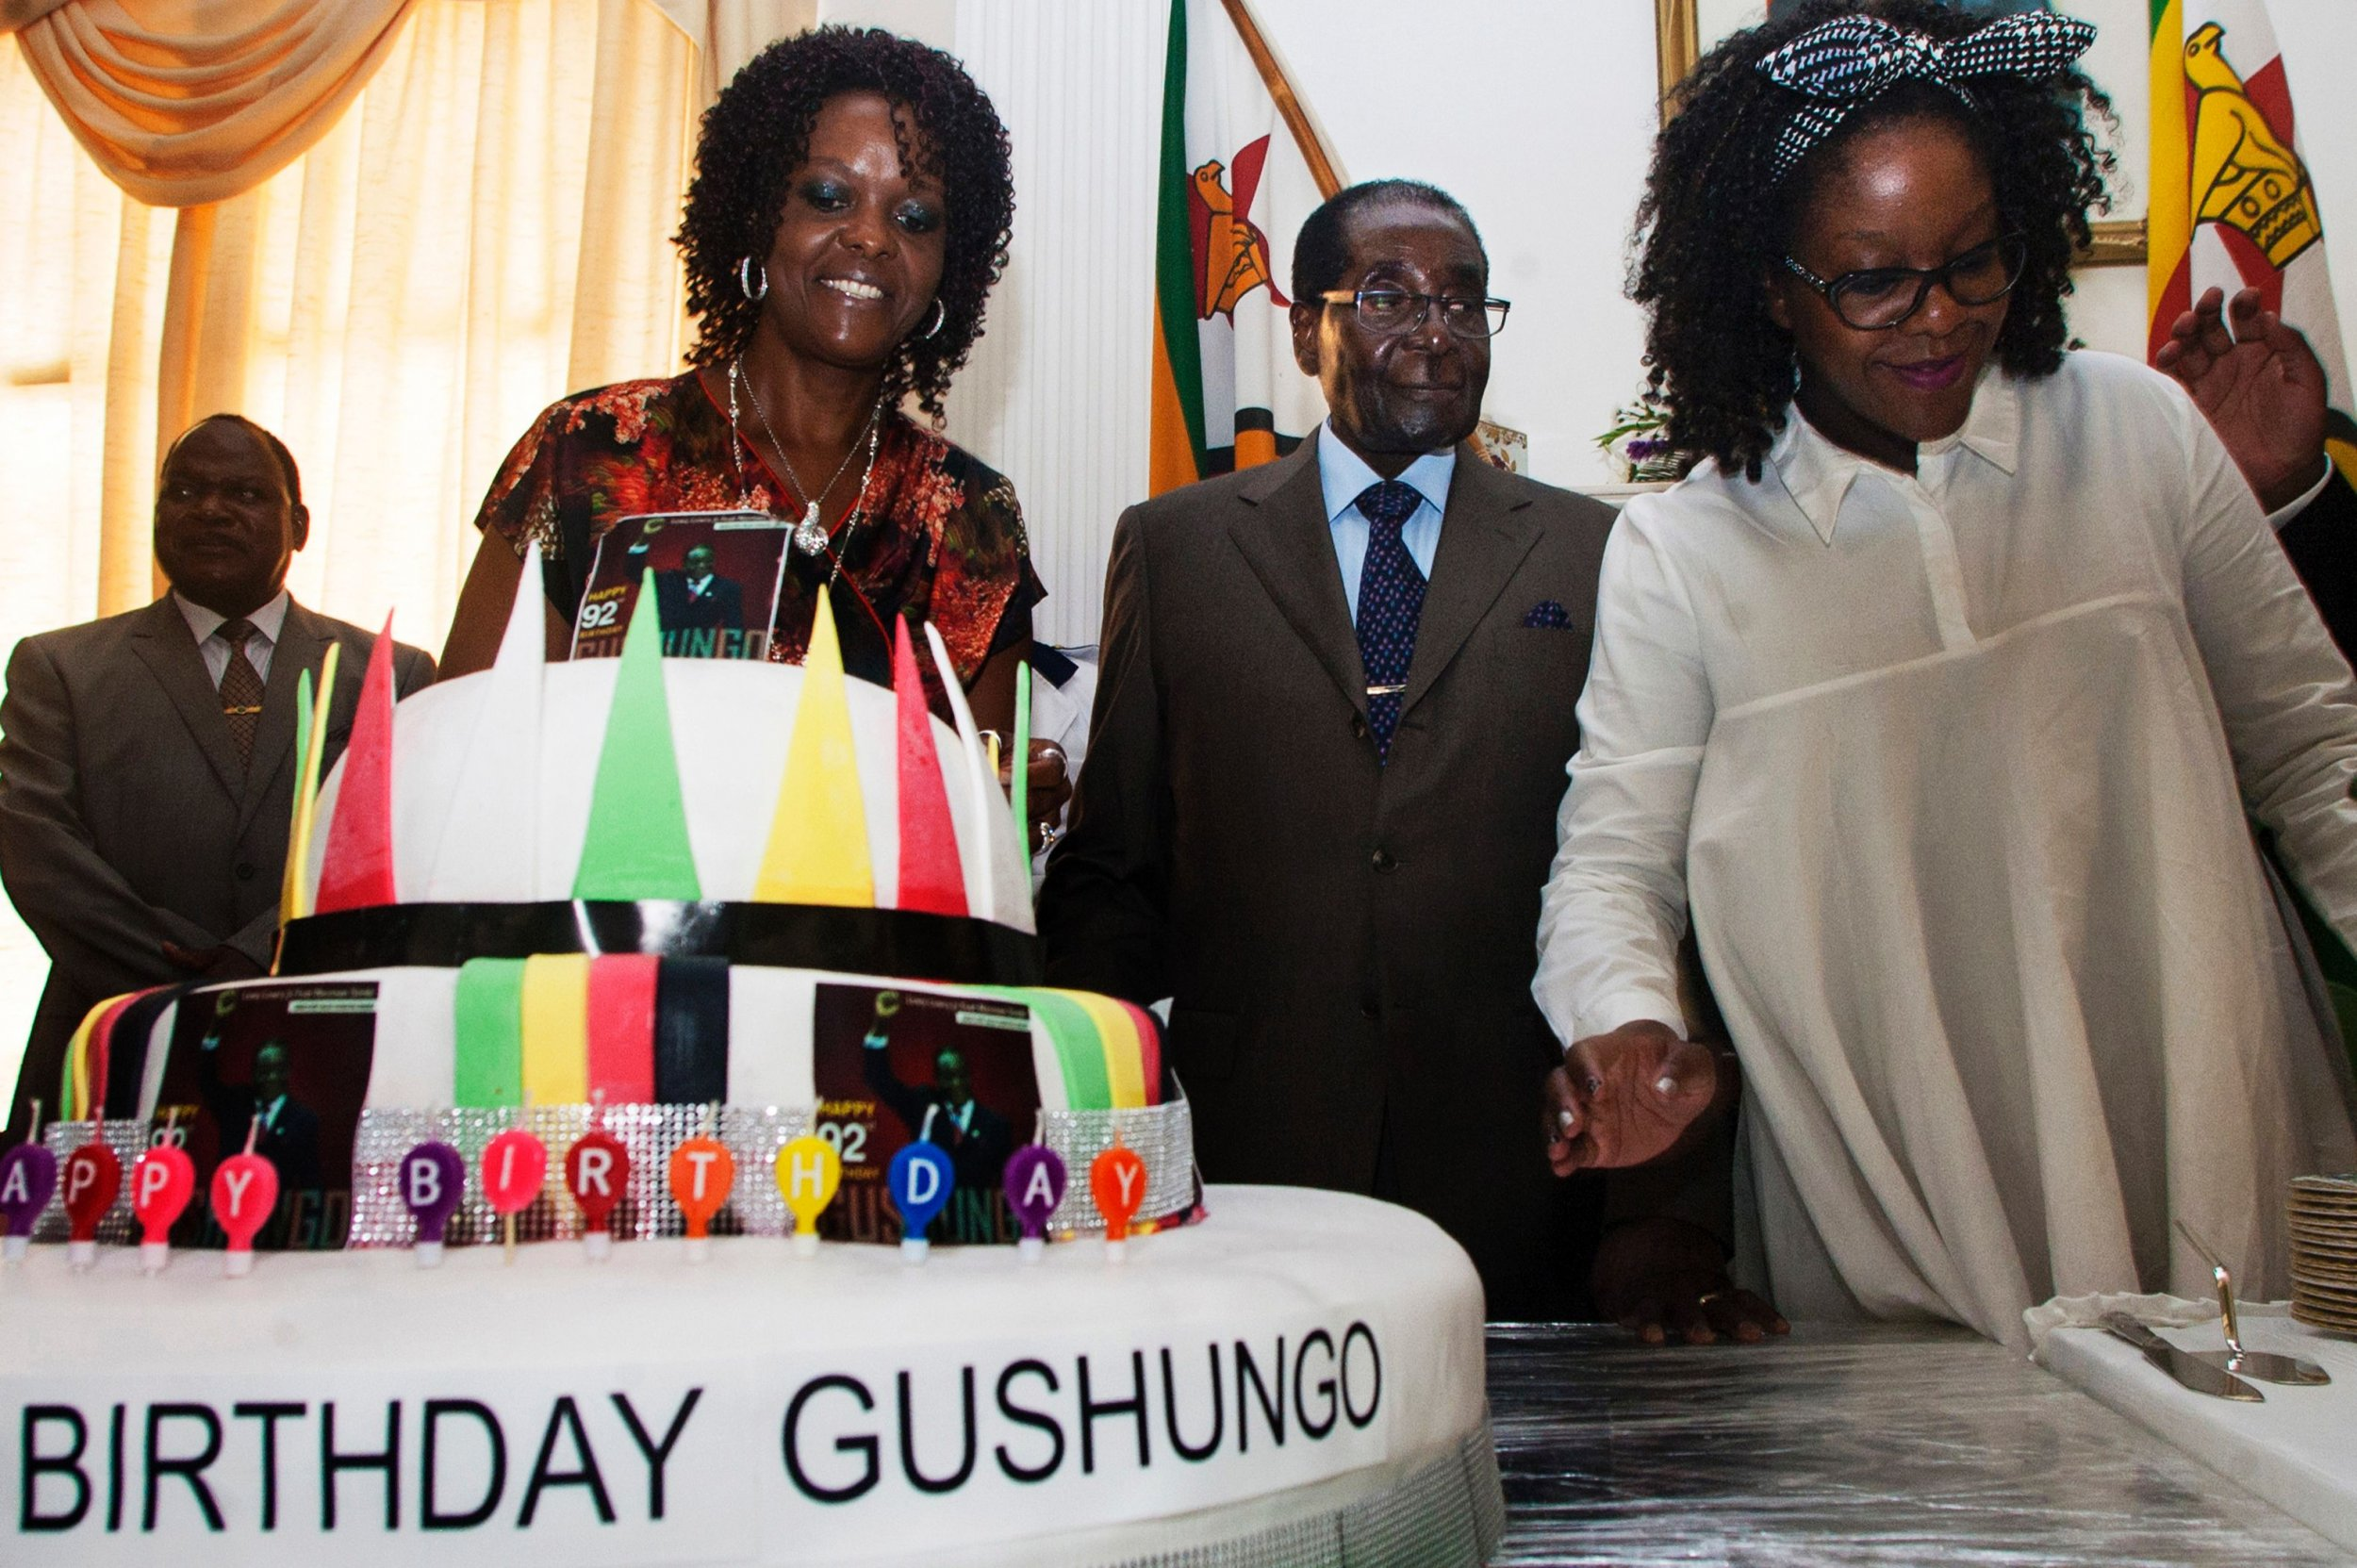 Robert Mugabe birthday cake